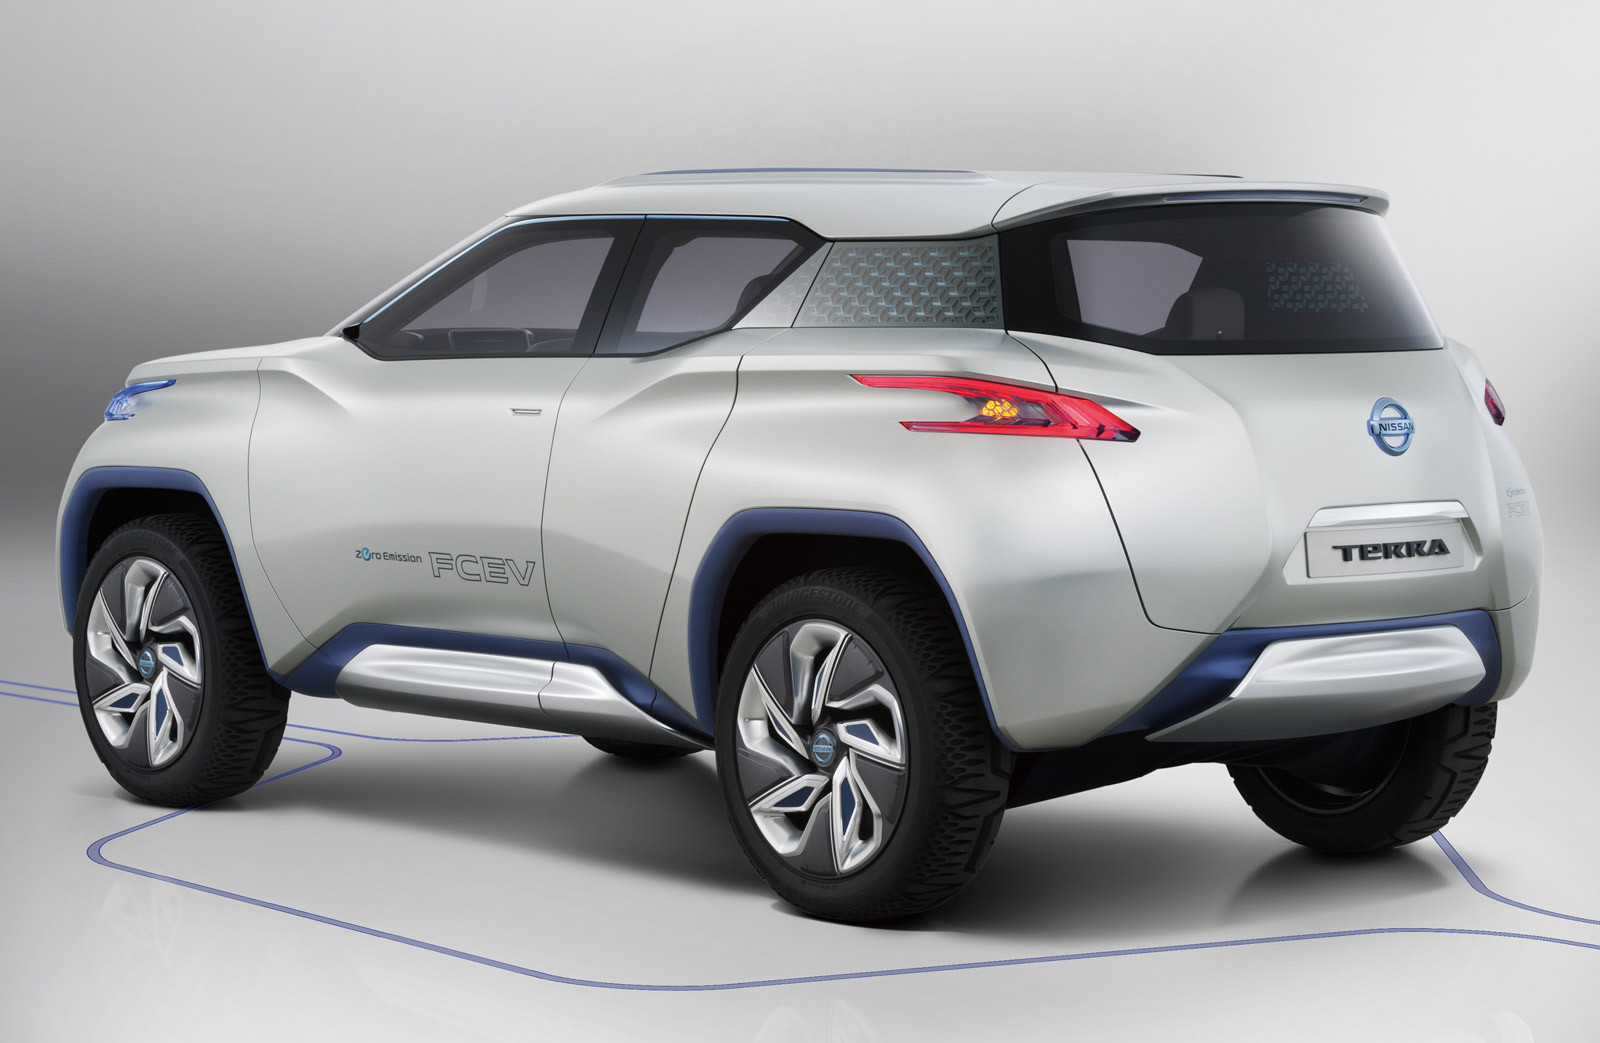 Nissan to debut terra fuel cell suv concept at paris motor show vanachro Gallery